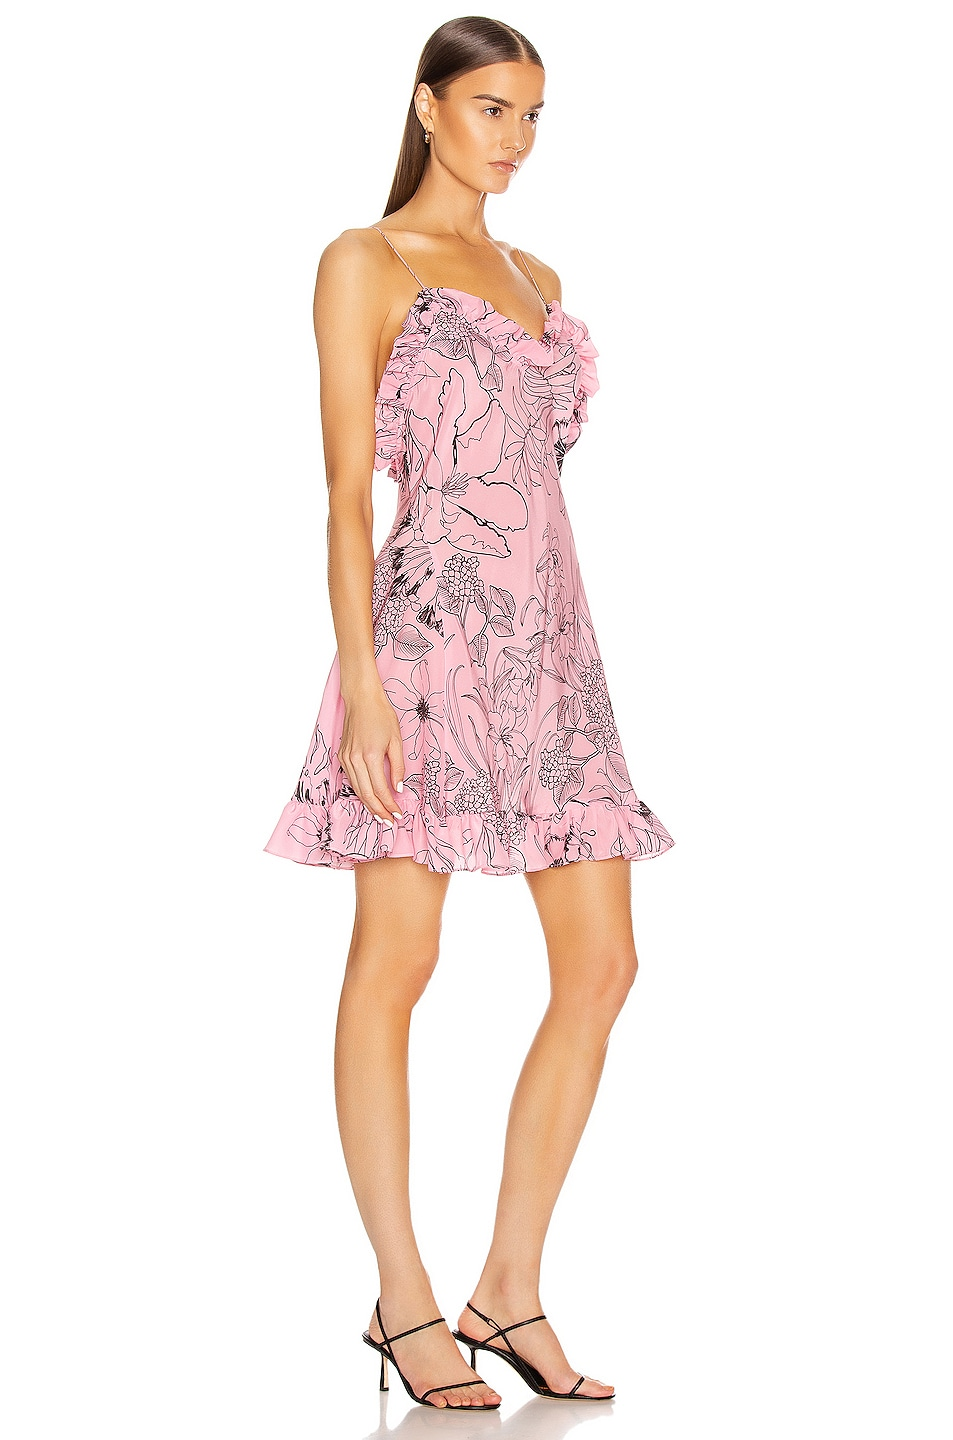 Image 2 of Les Reveries Ruffle Mini Cami Dress in Pink Peacock